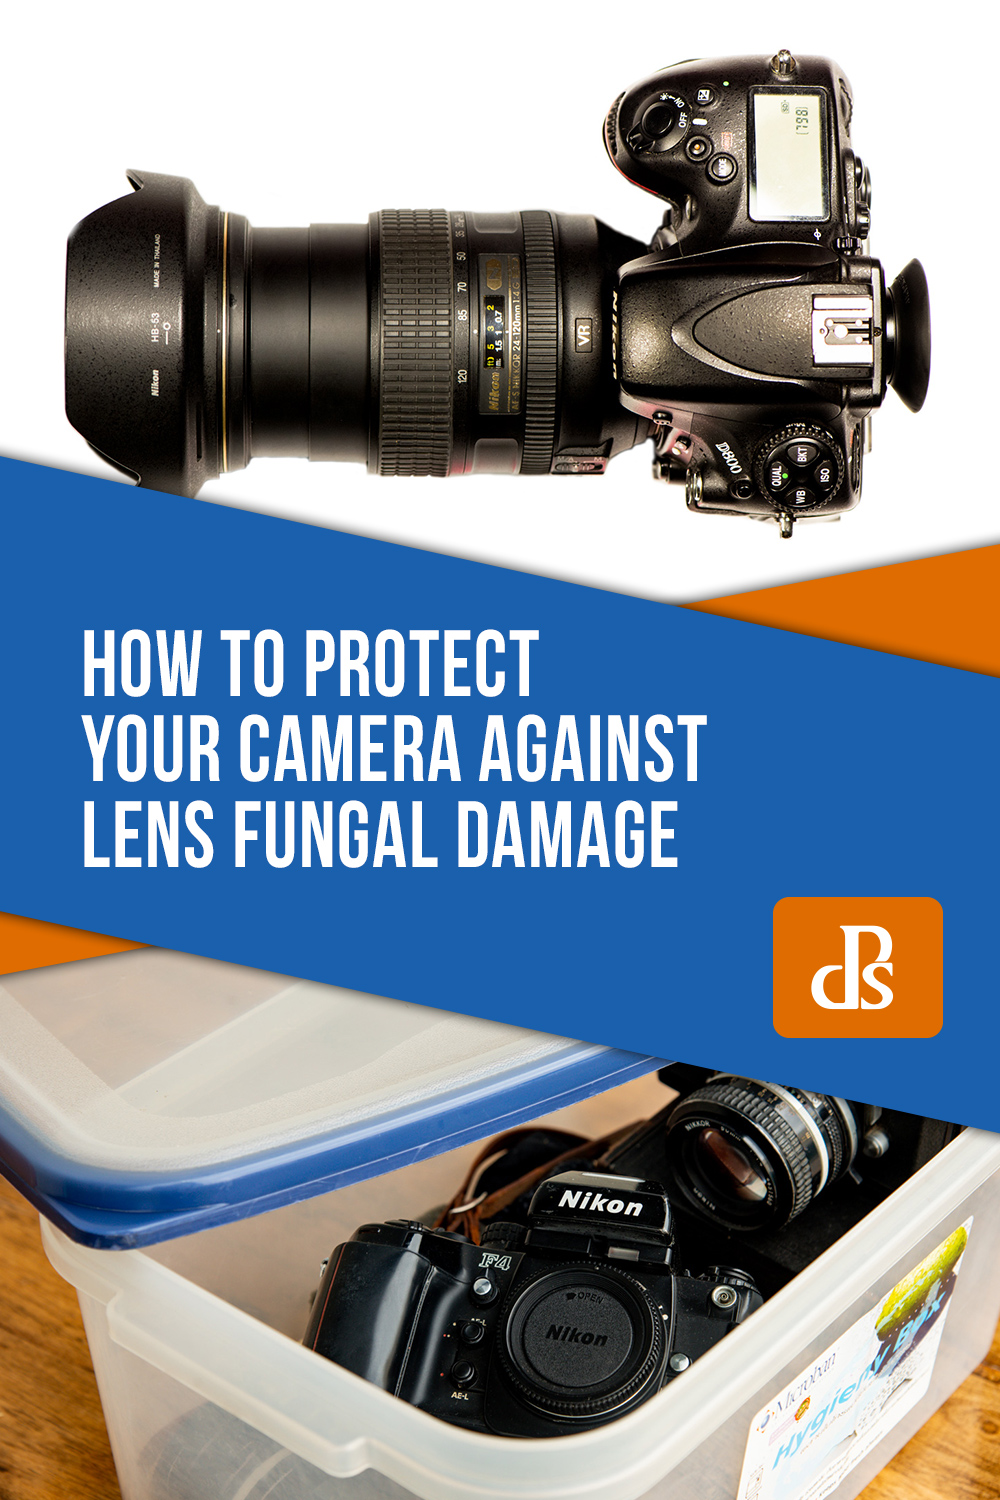 lens-fungal-damage-protection